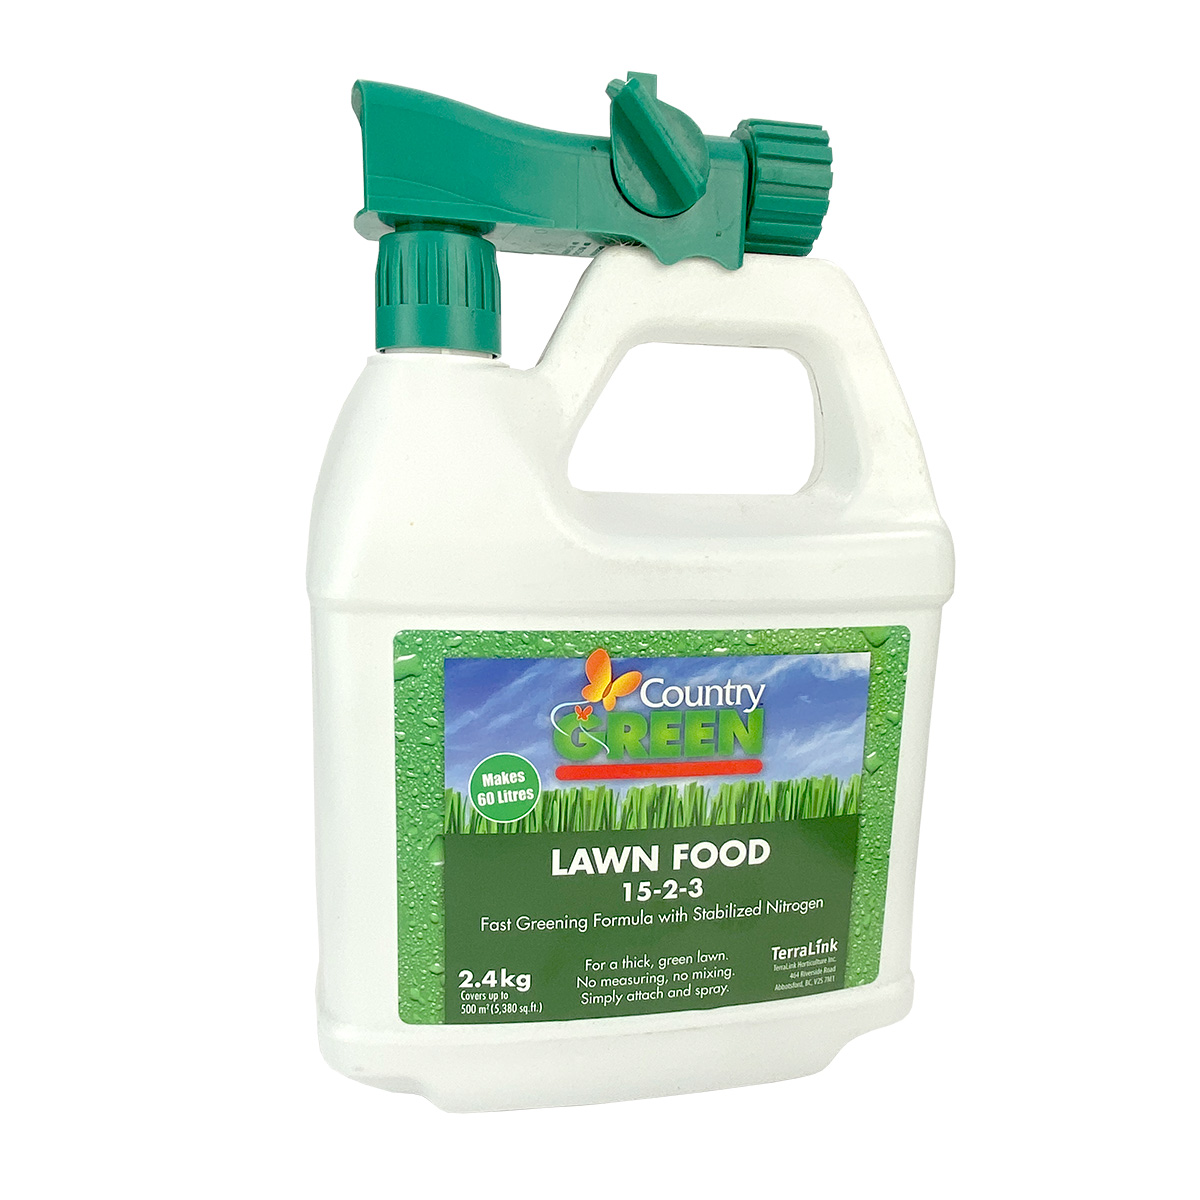 Country Green Lawn Food 15-2-3 2.4kg